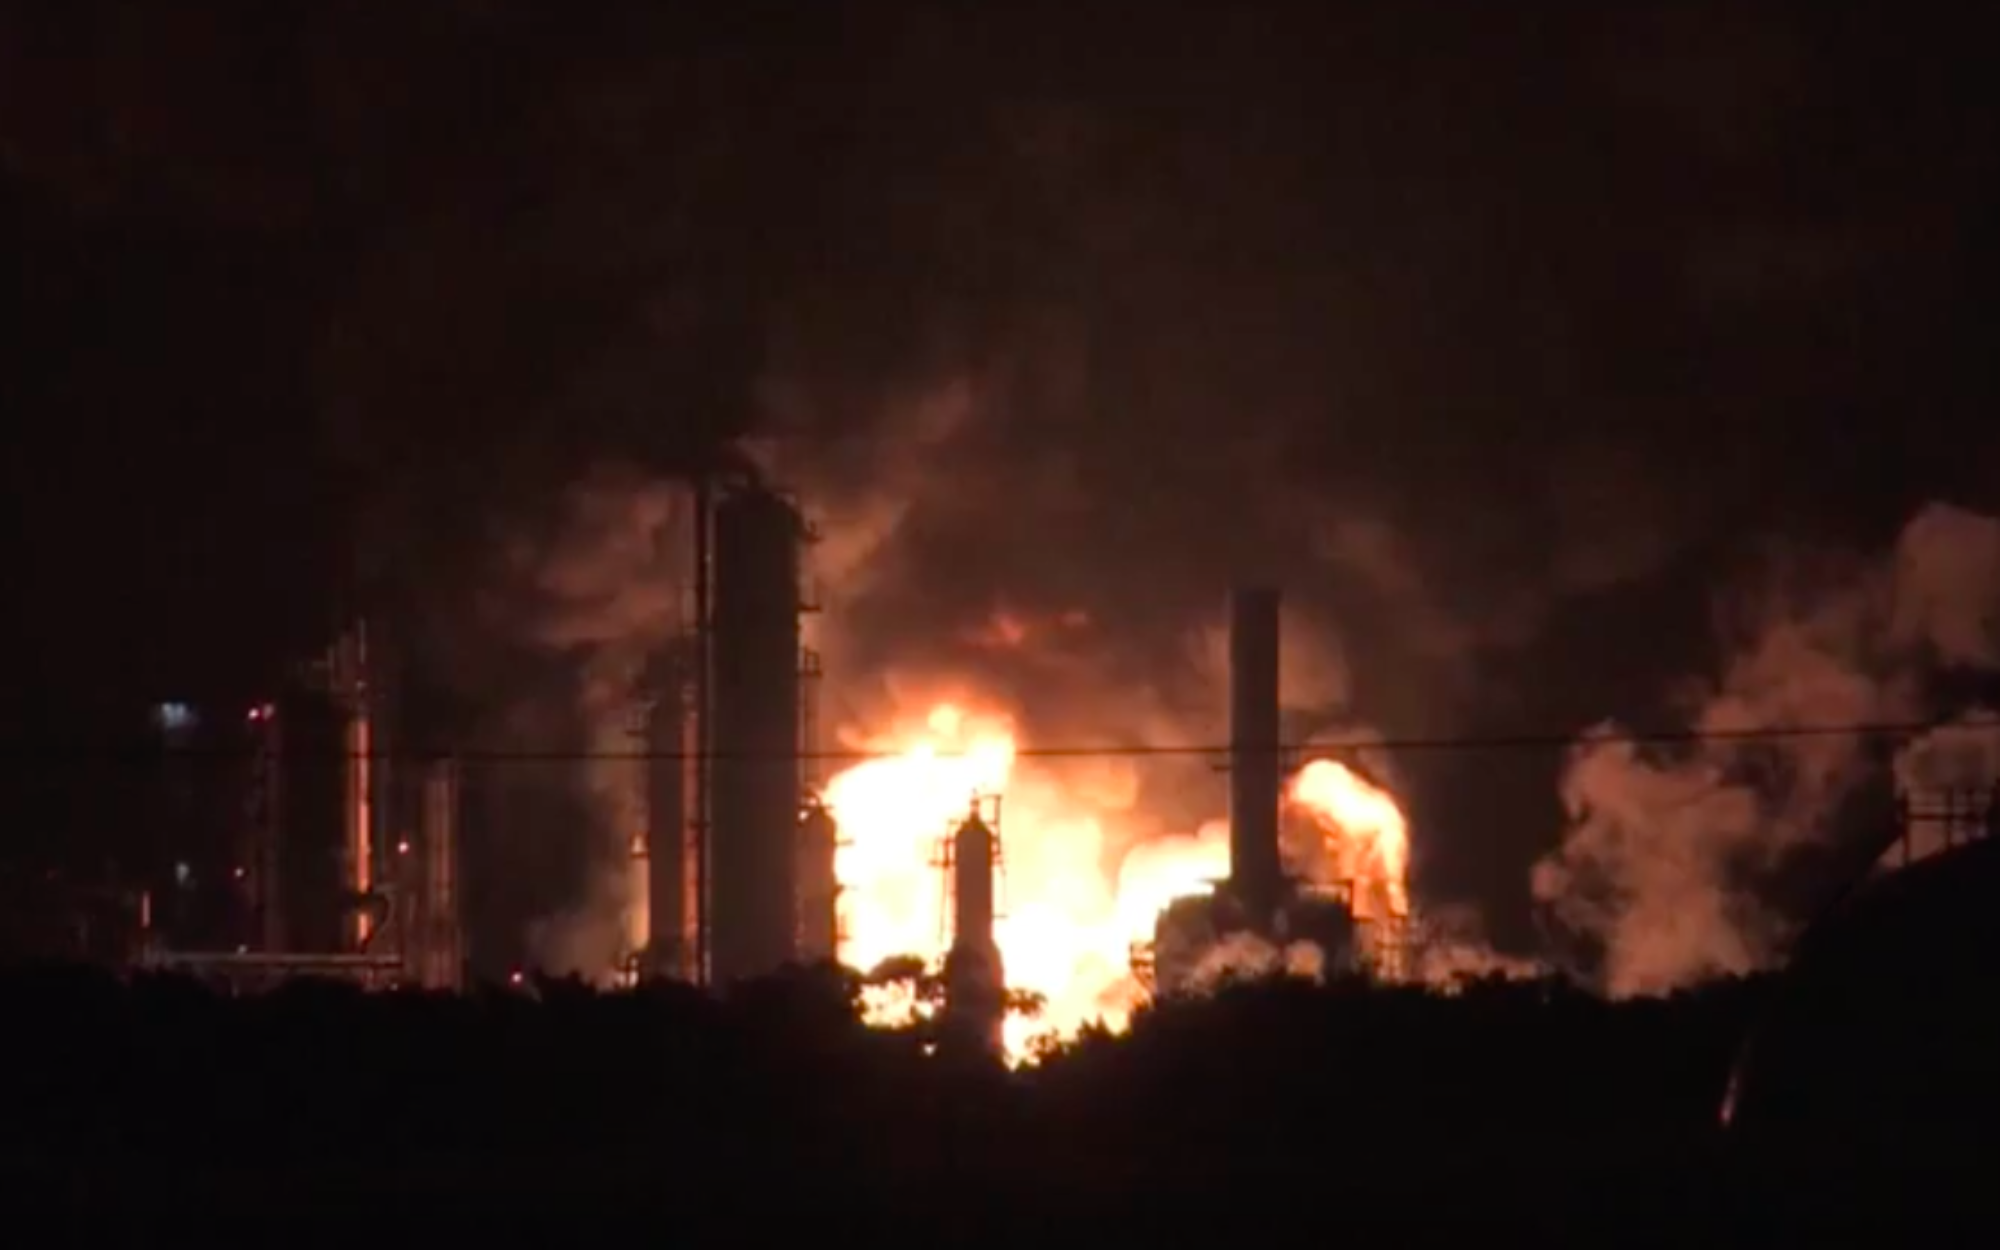 Philadelphia Refinery Explosion YouTube Screen shot